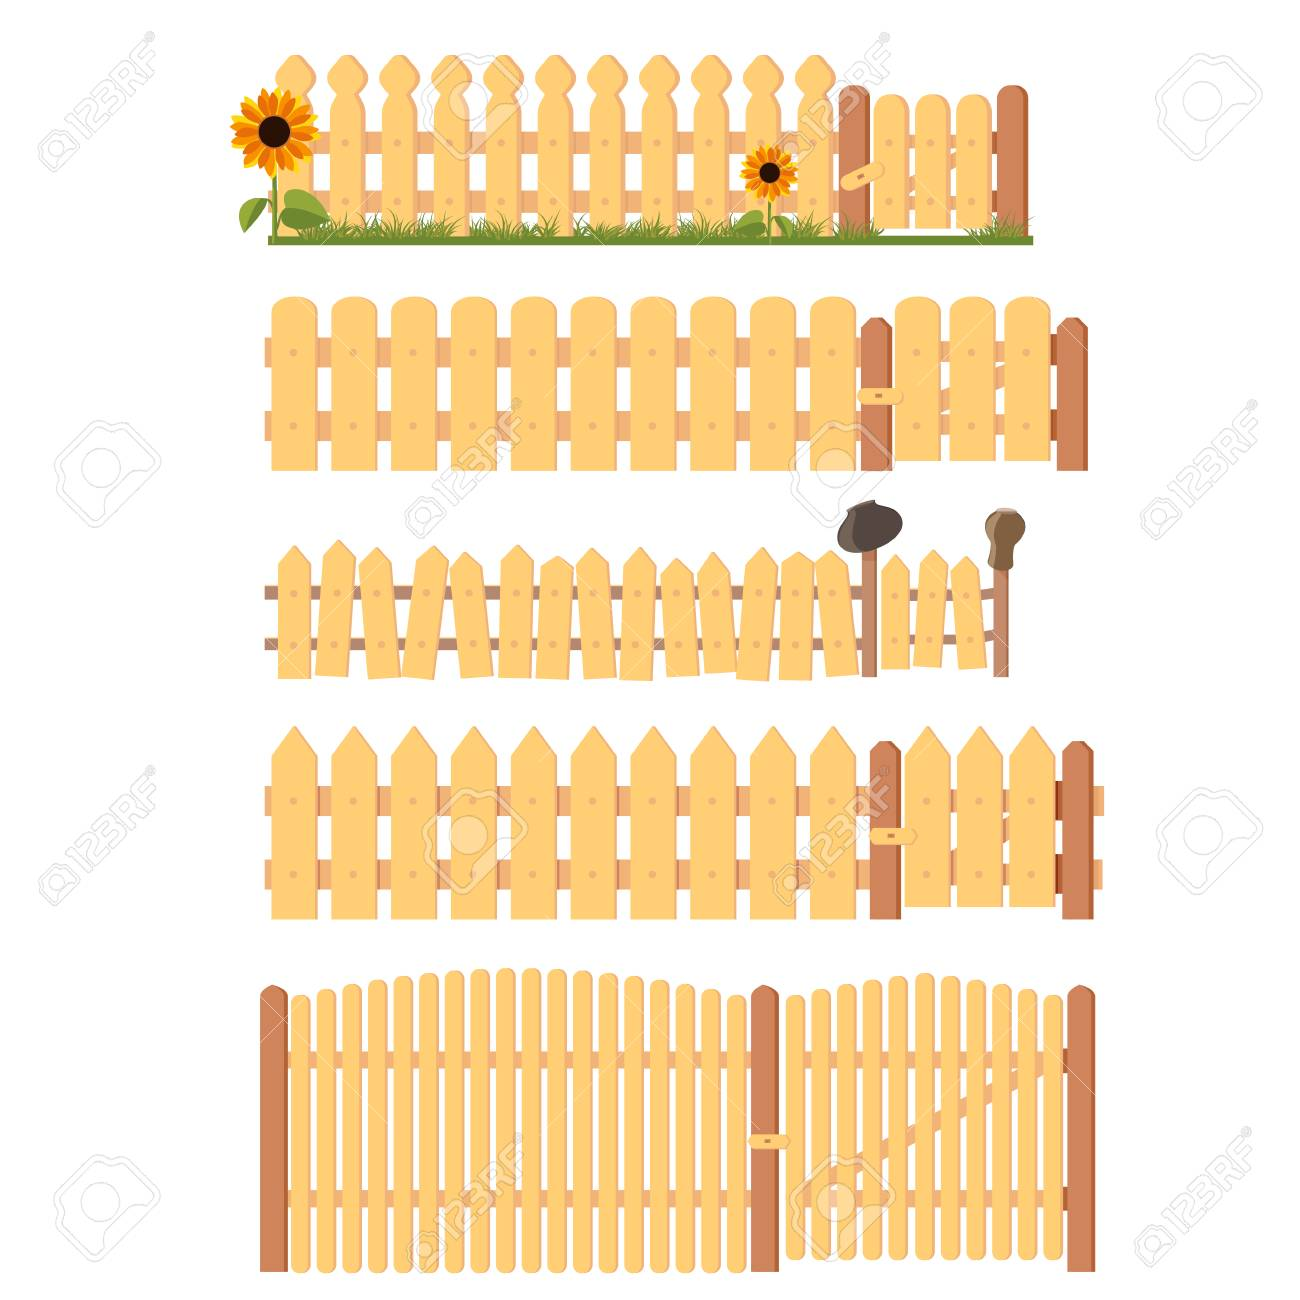 Rustic Wooden Cartoon Fences Vector Set Fence With Gate Grass Flowers And Rural